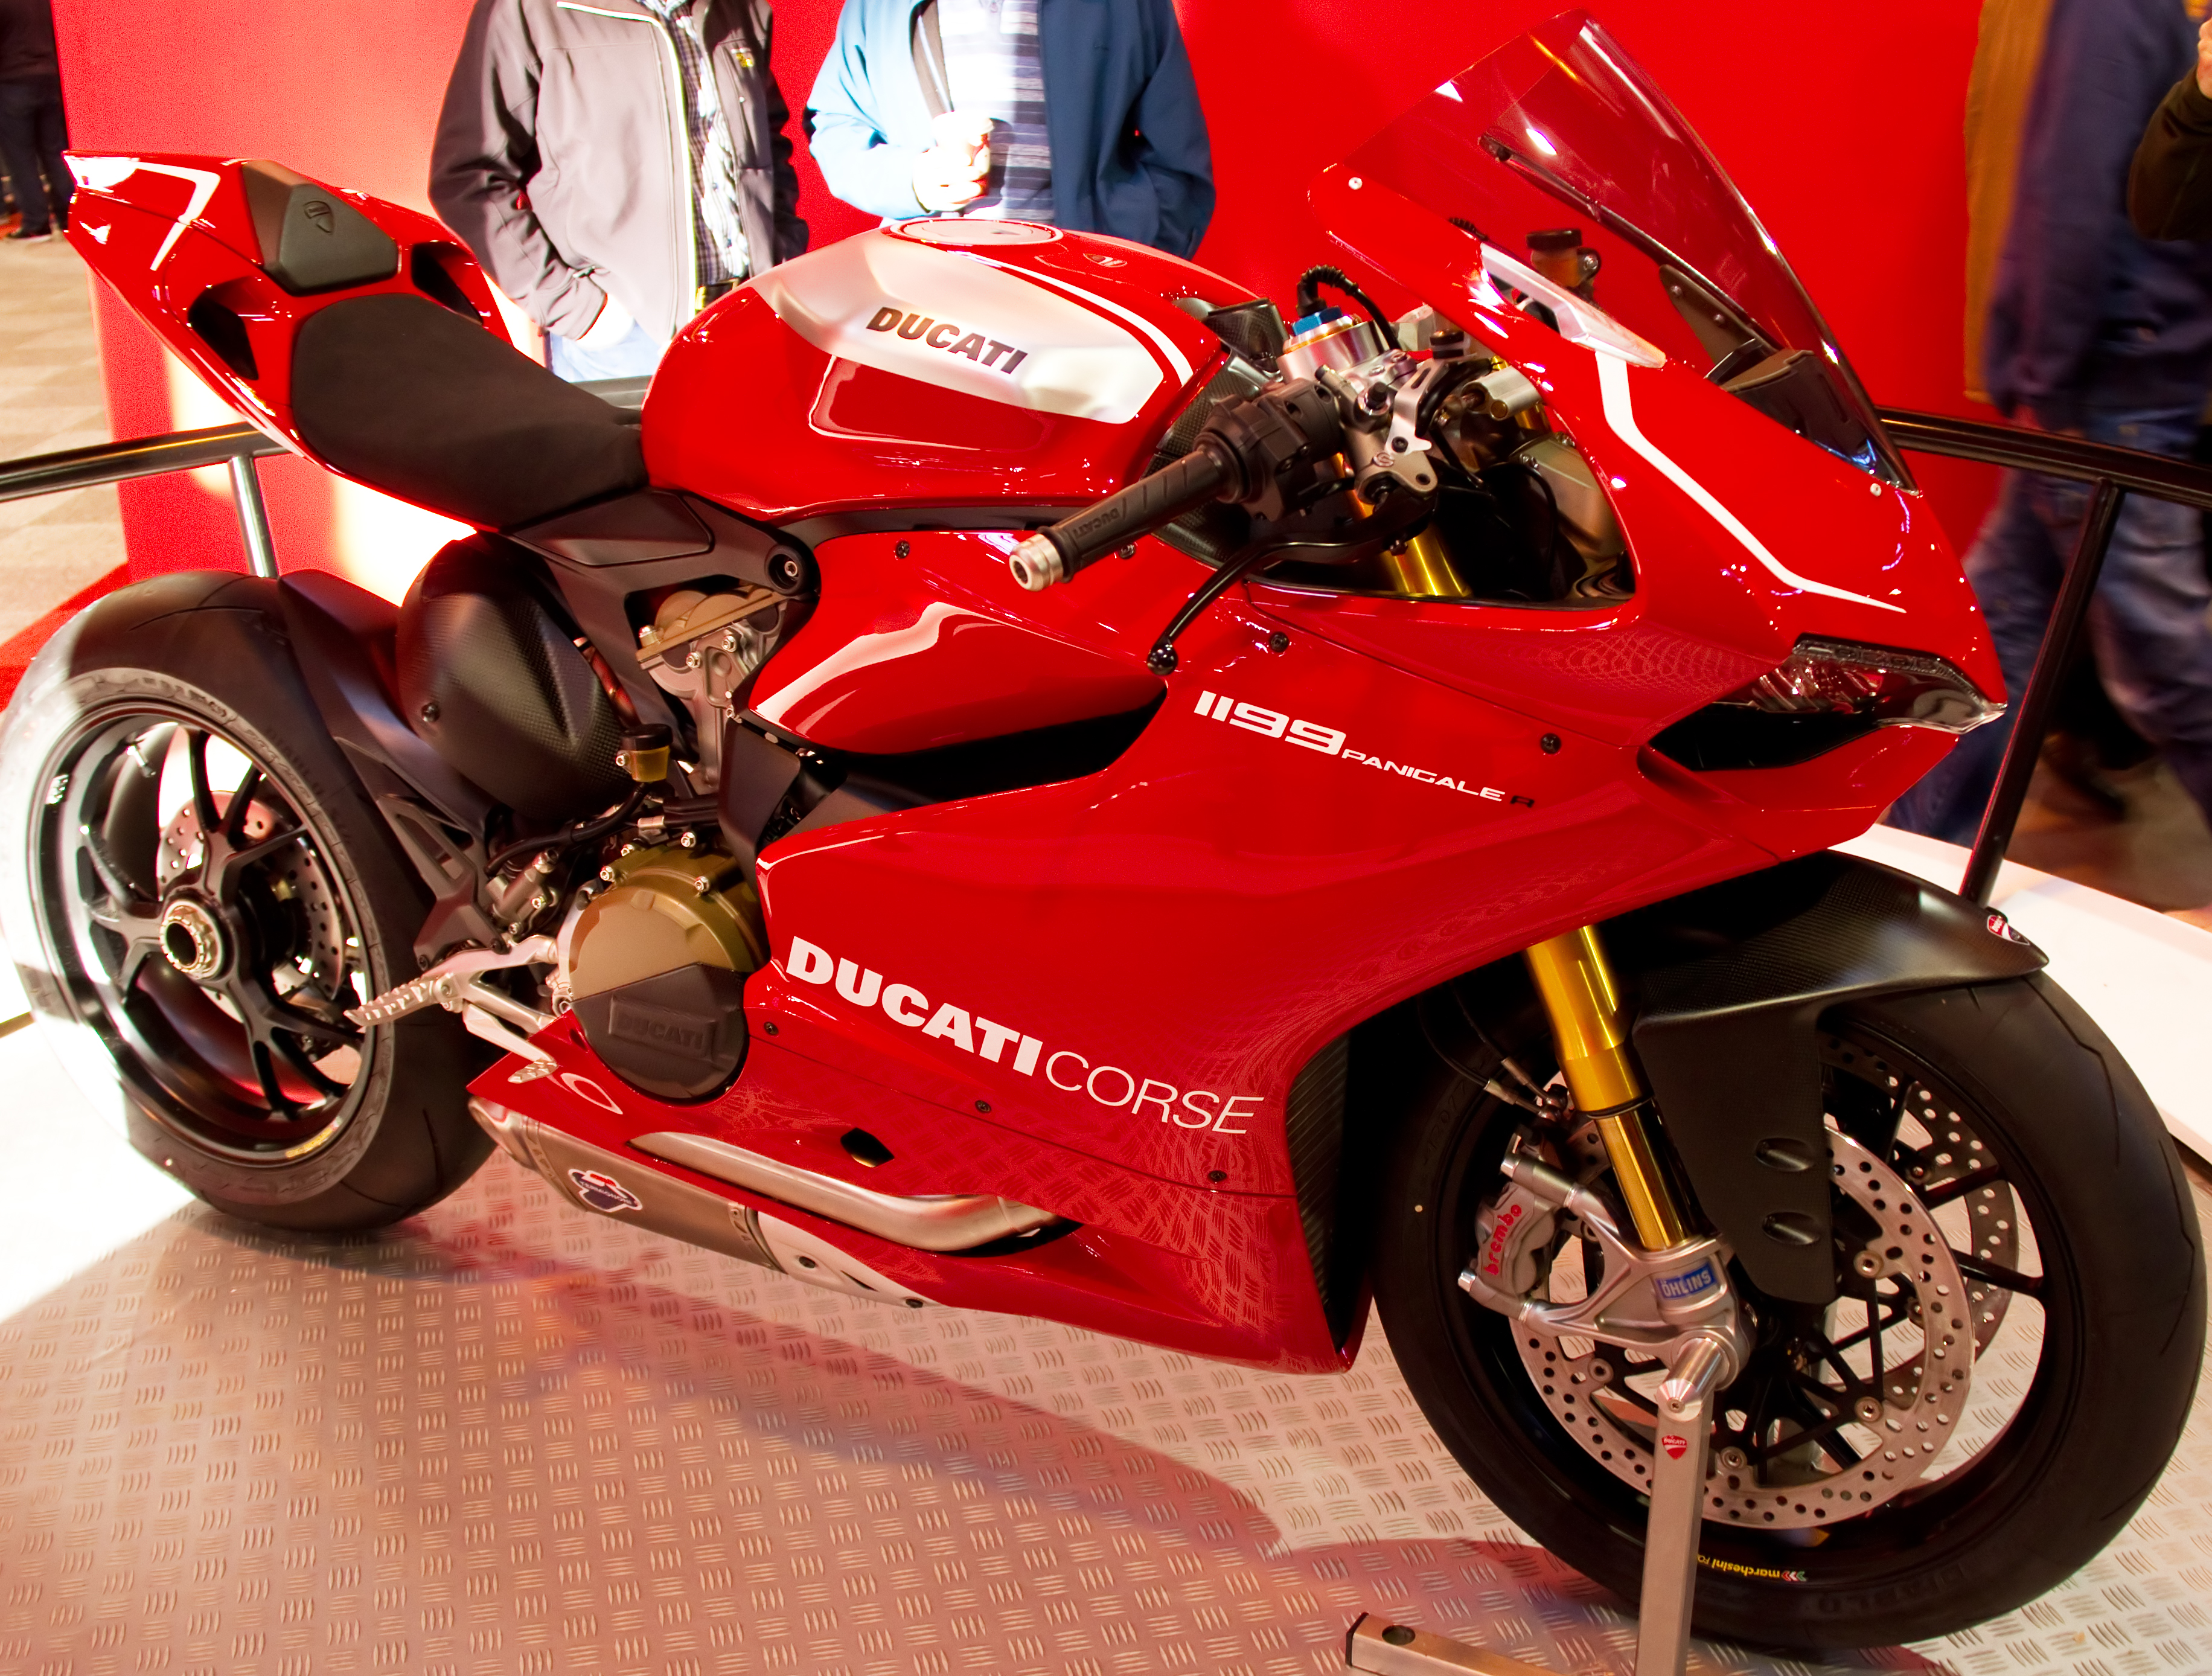 Ducati Mdoes Not Work